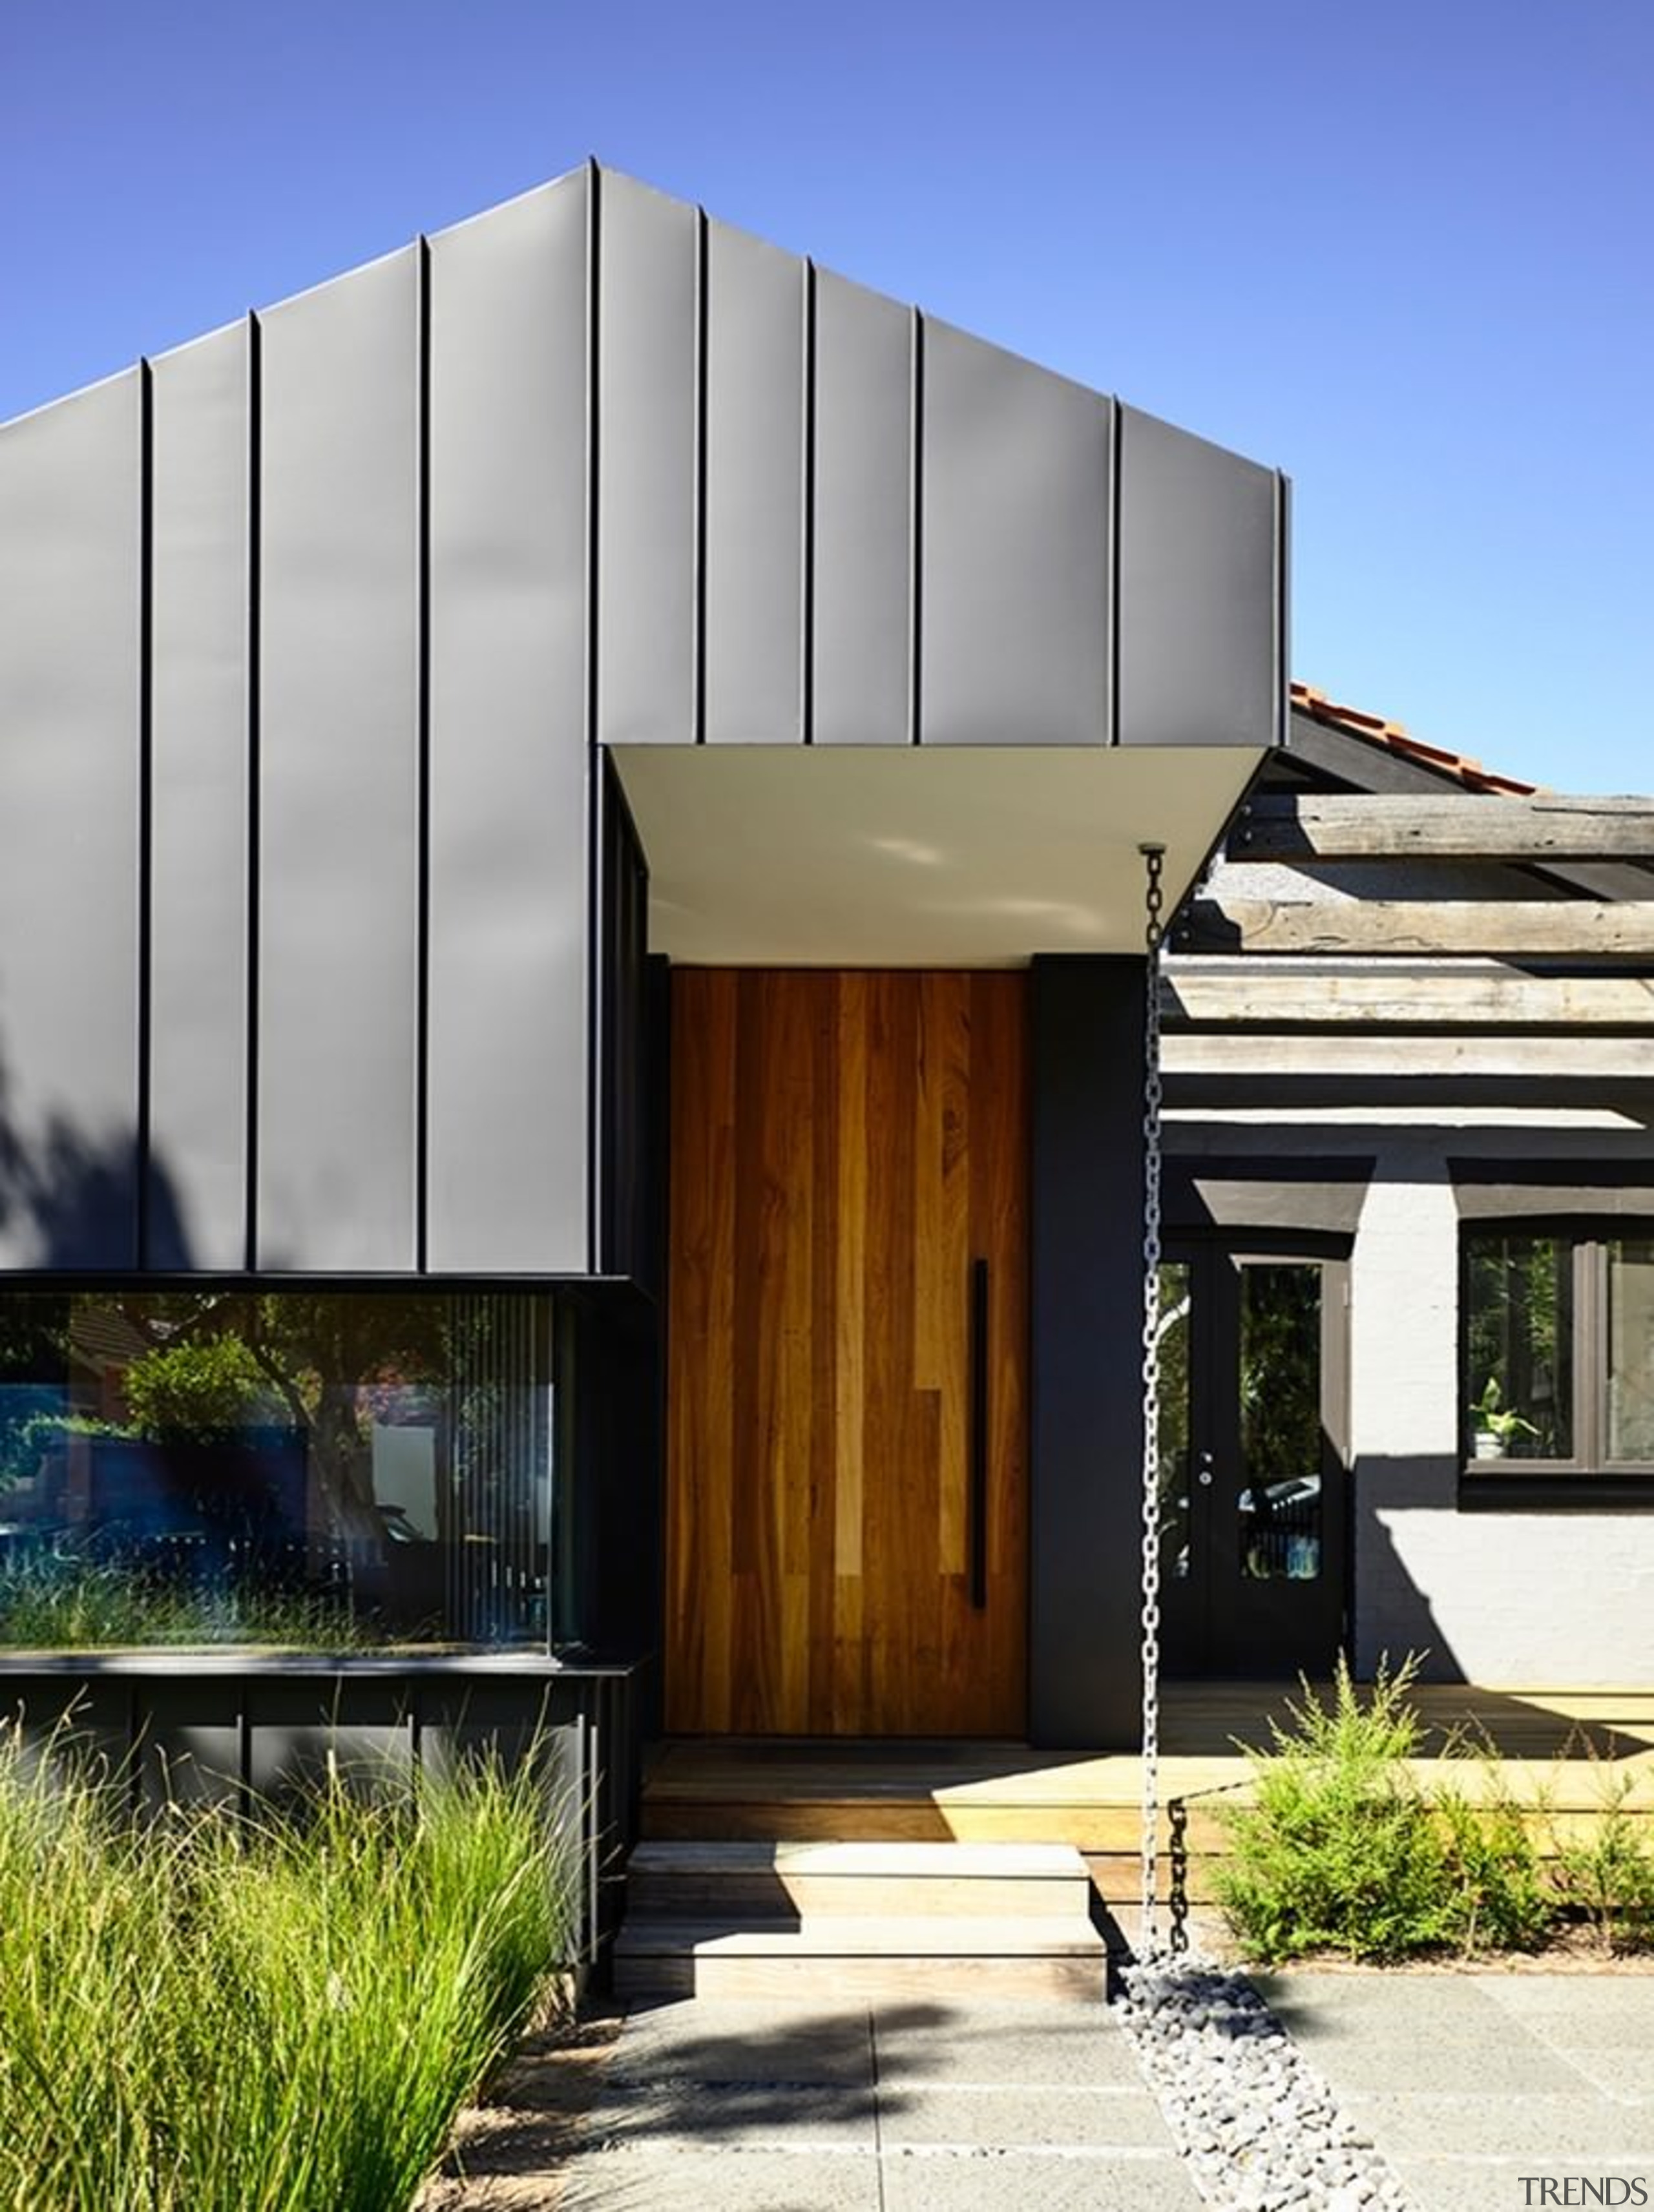 A pitched roof sits above the timber door architecture, building, elevation, facade, home, house, property, real estate, residential area, gray